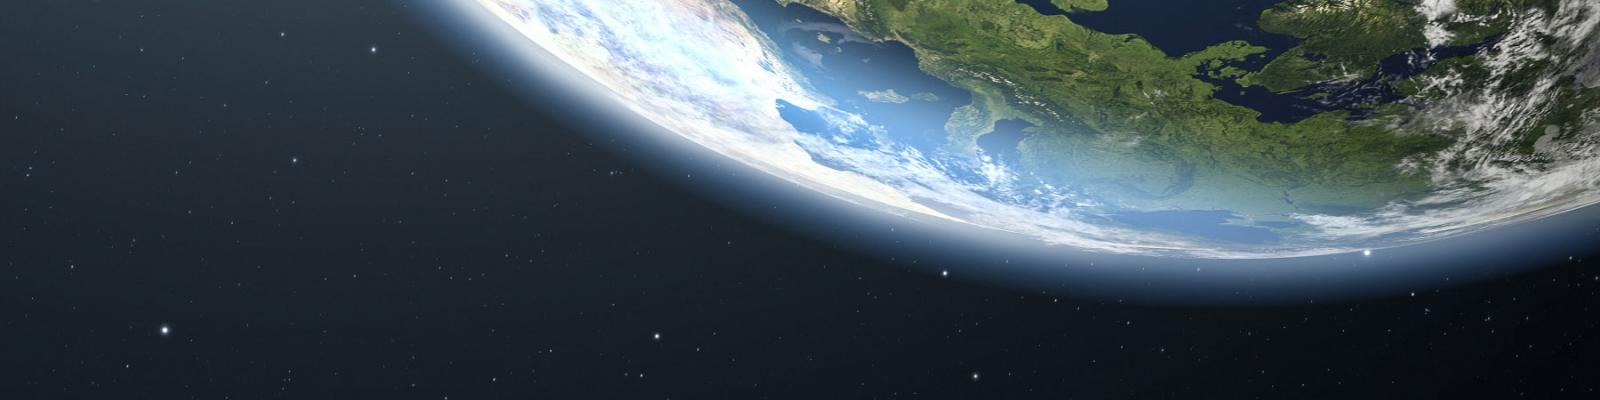 Looking at Earth from space